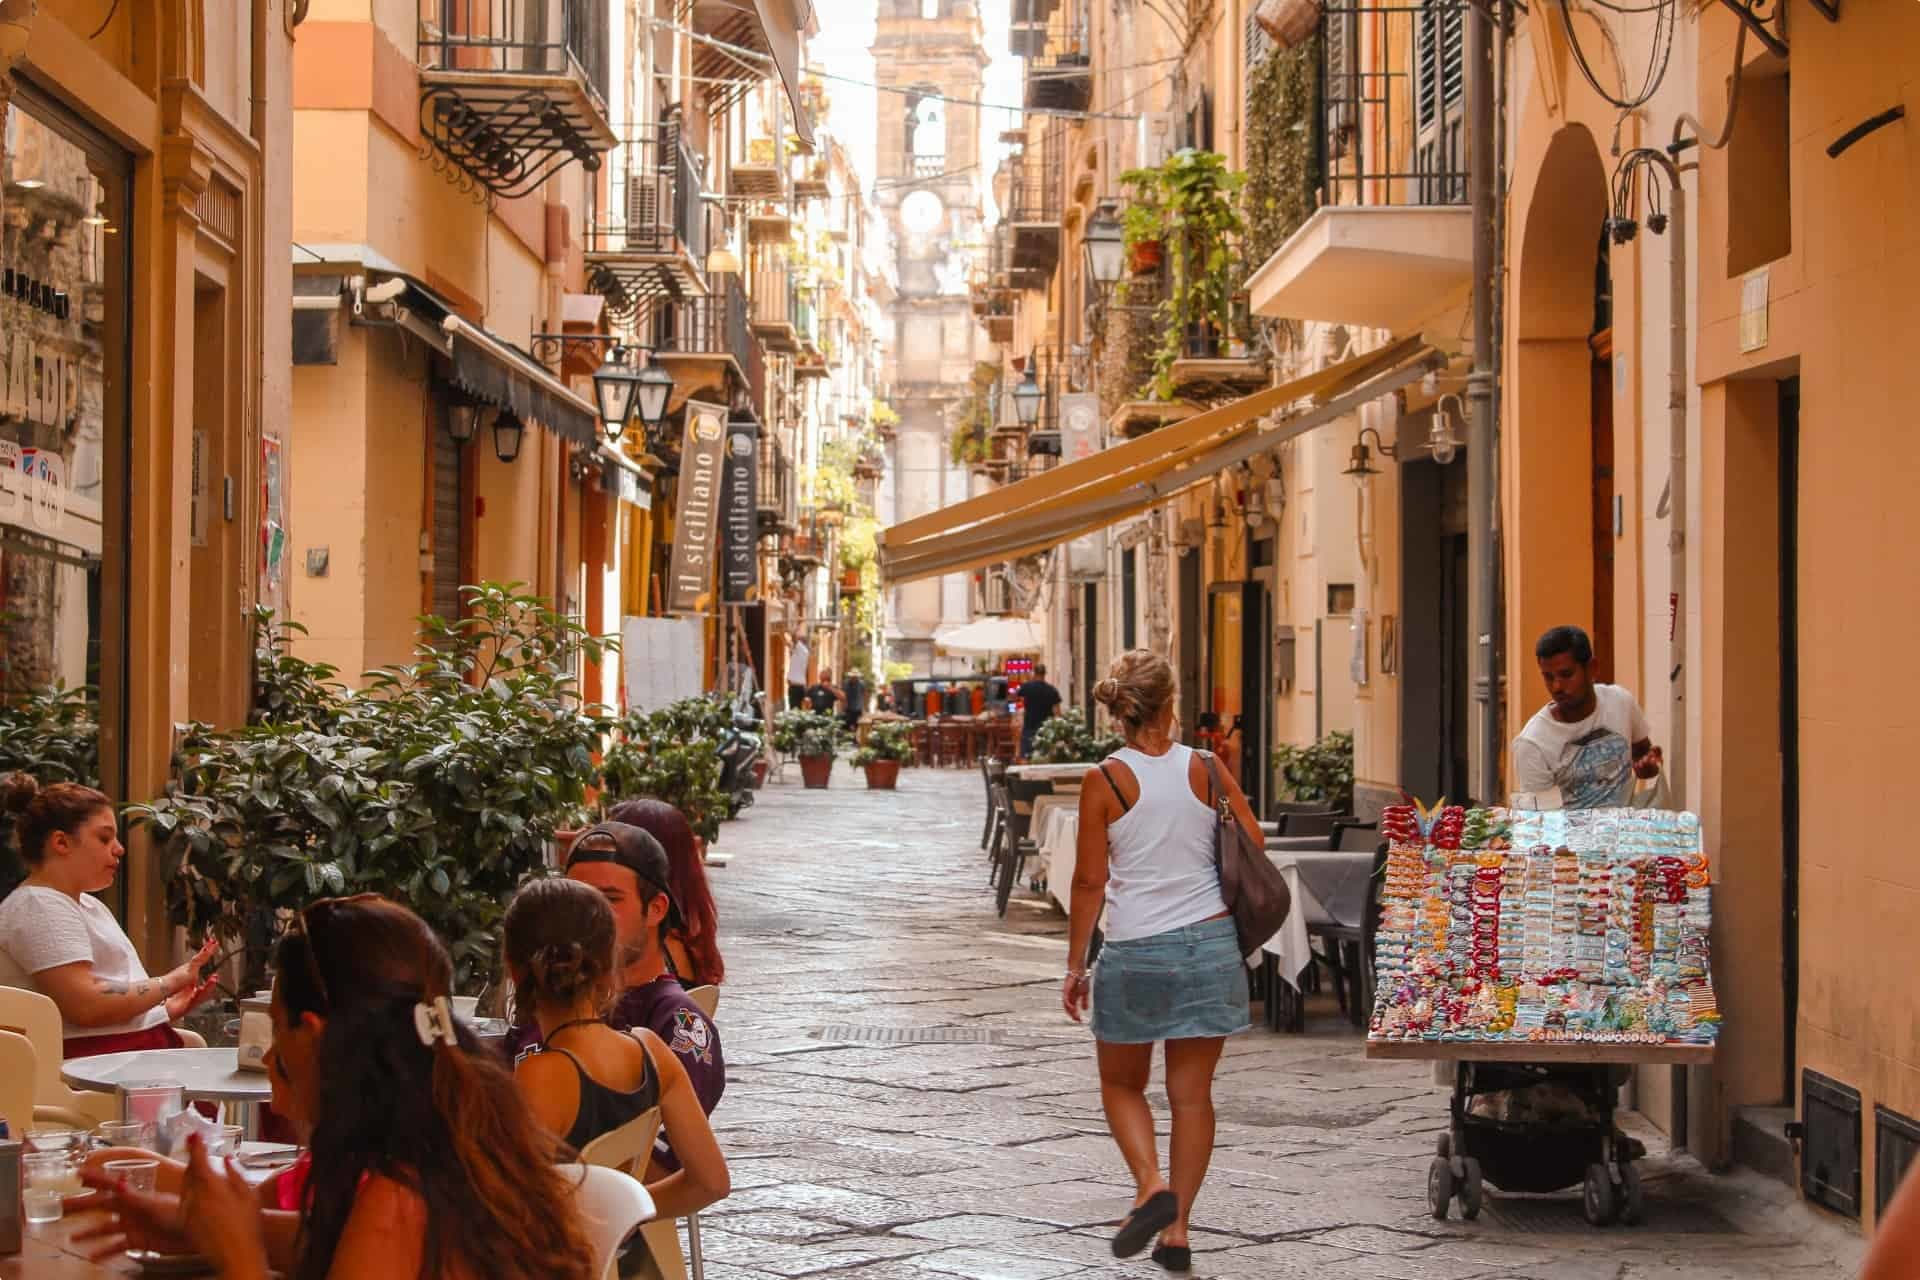 A street in Palermo, Sicily